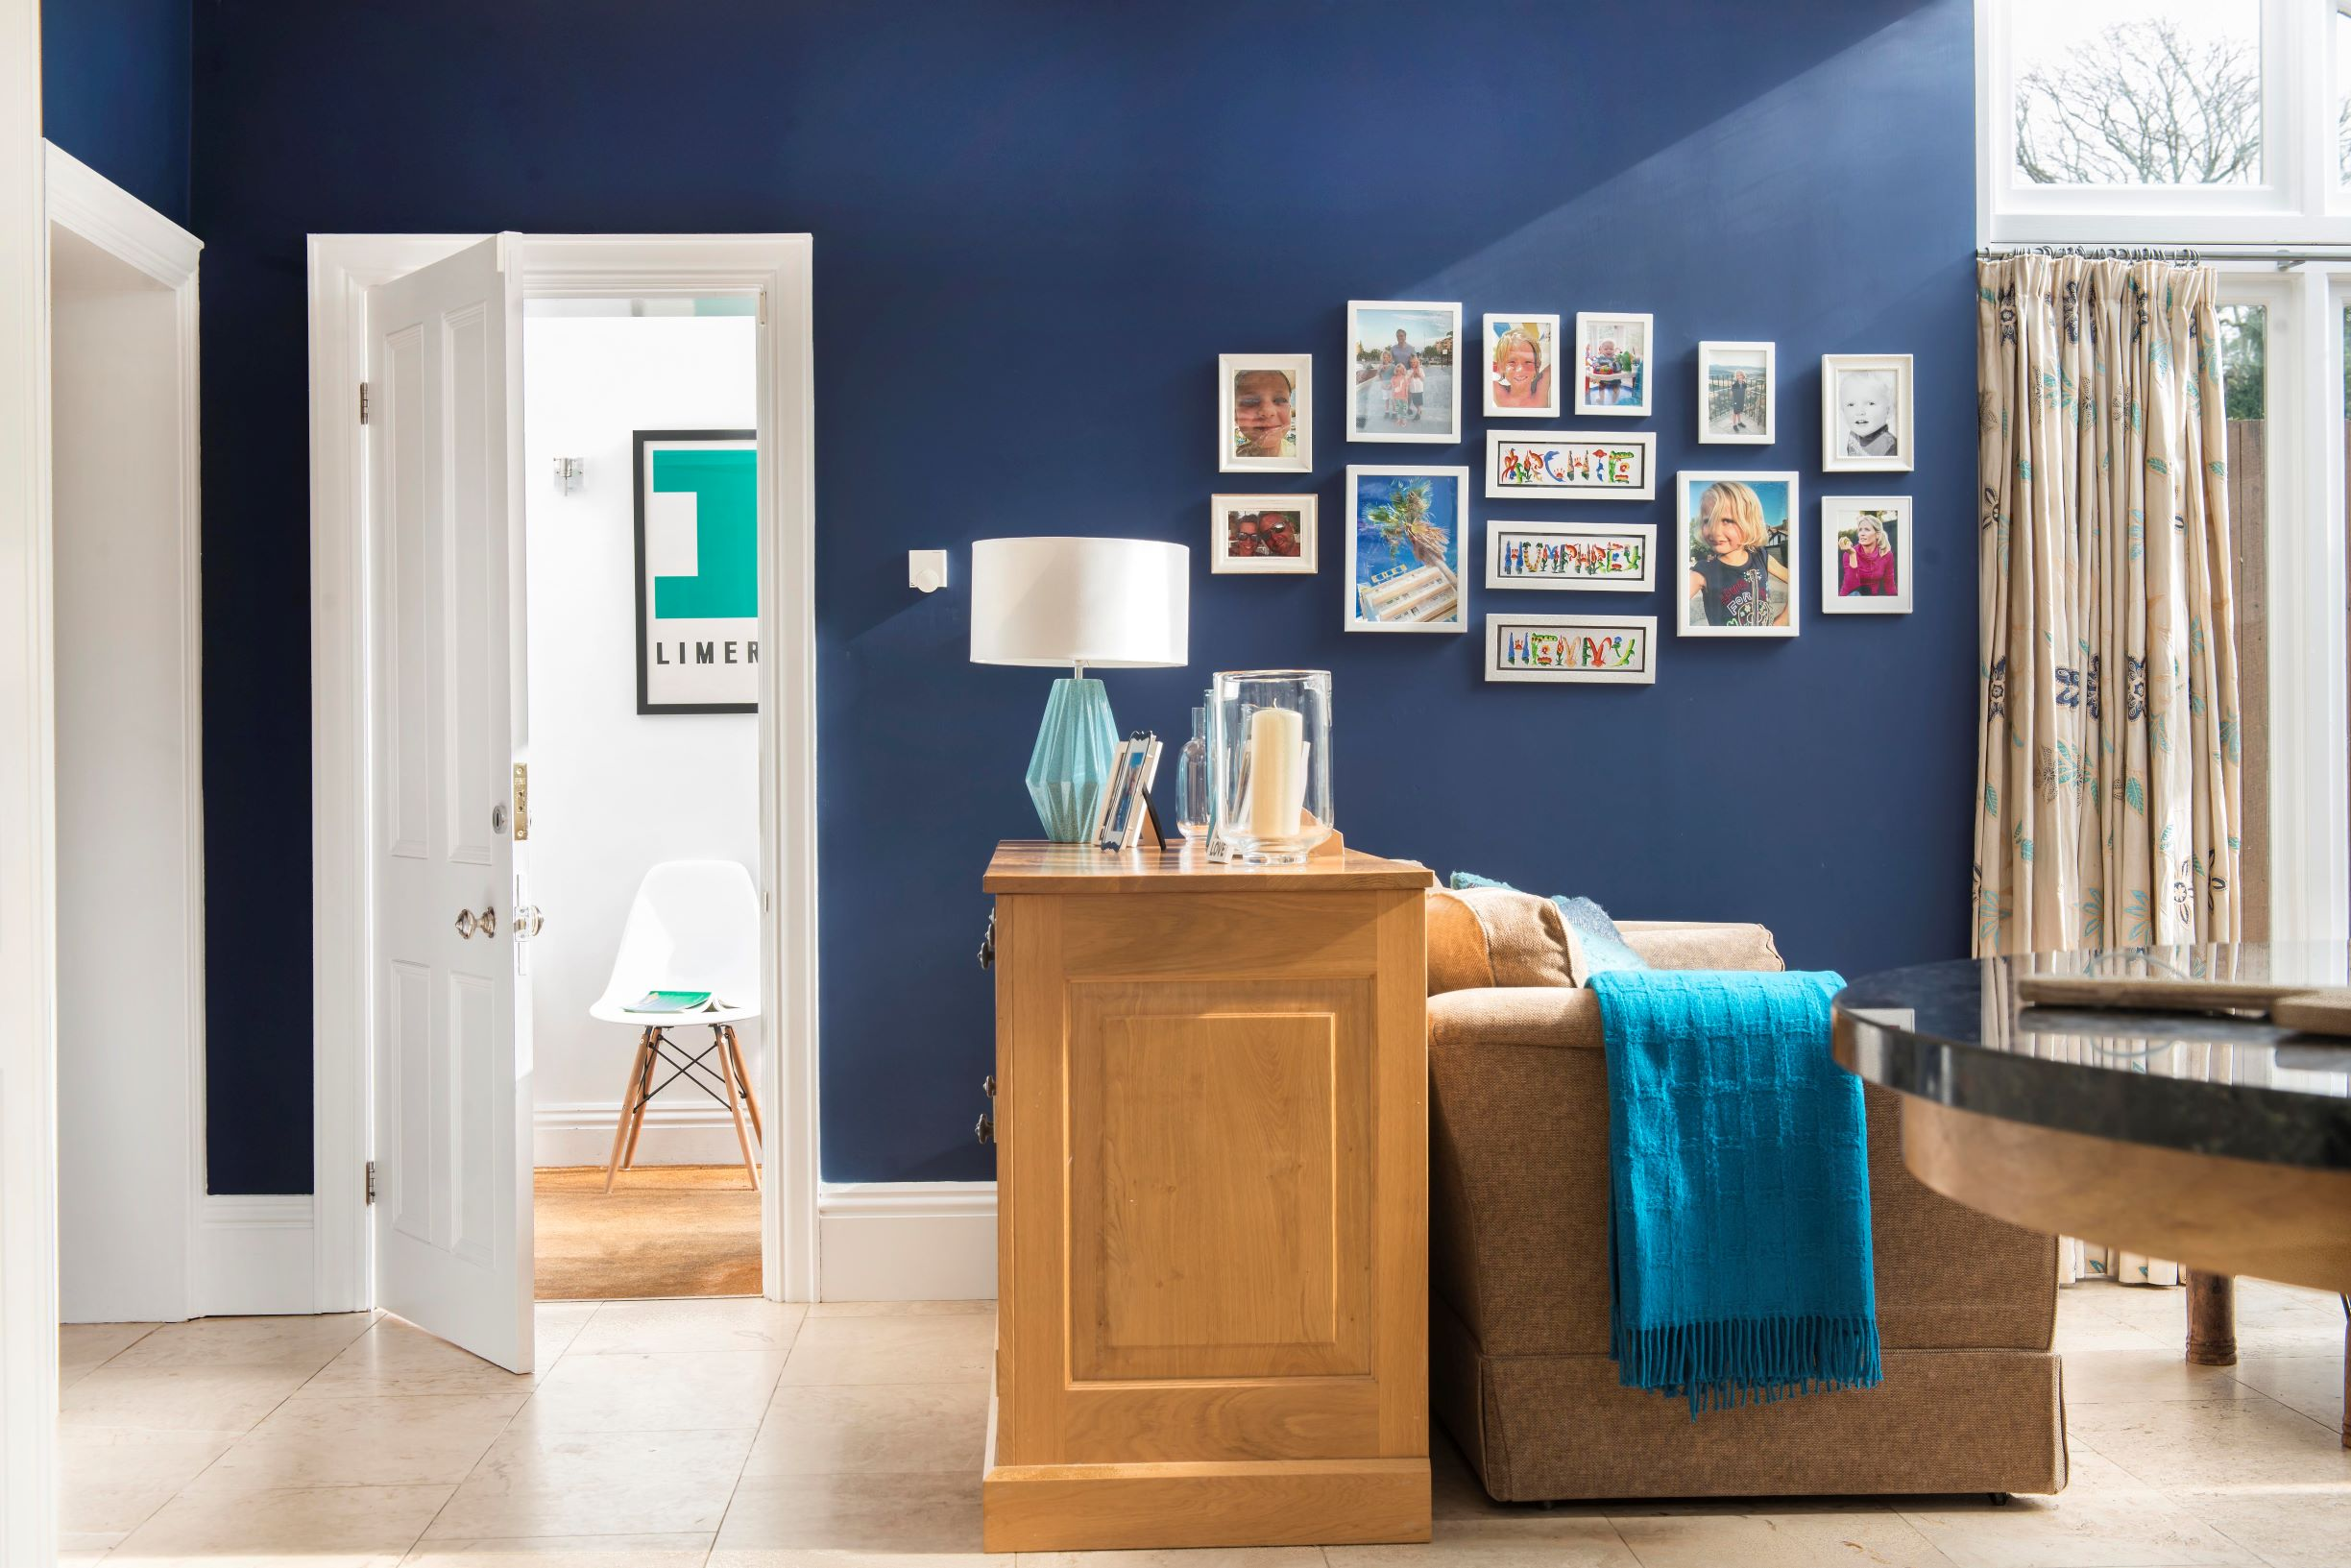 Moody blues and gallery walls